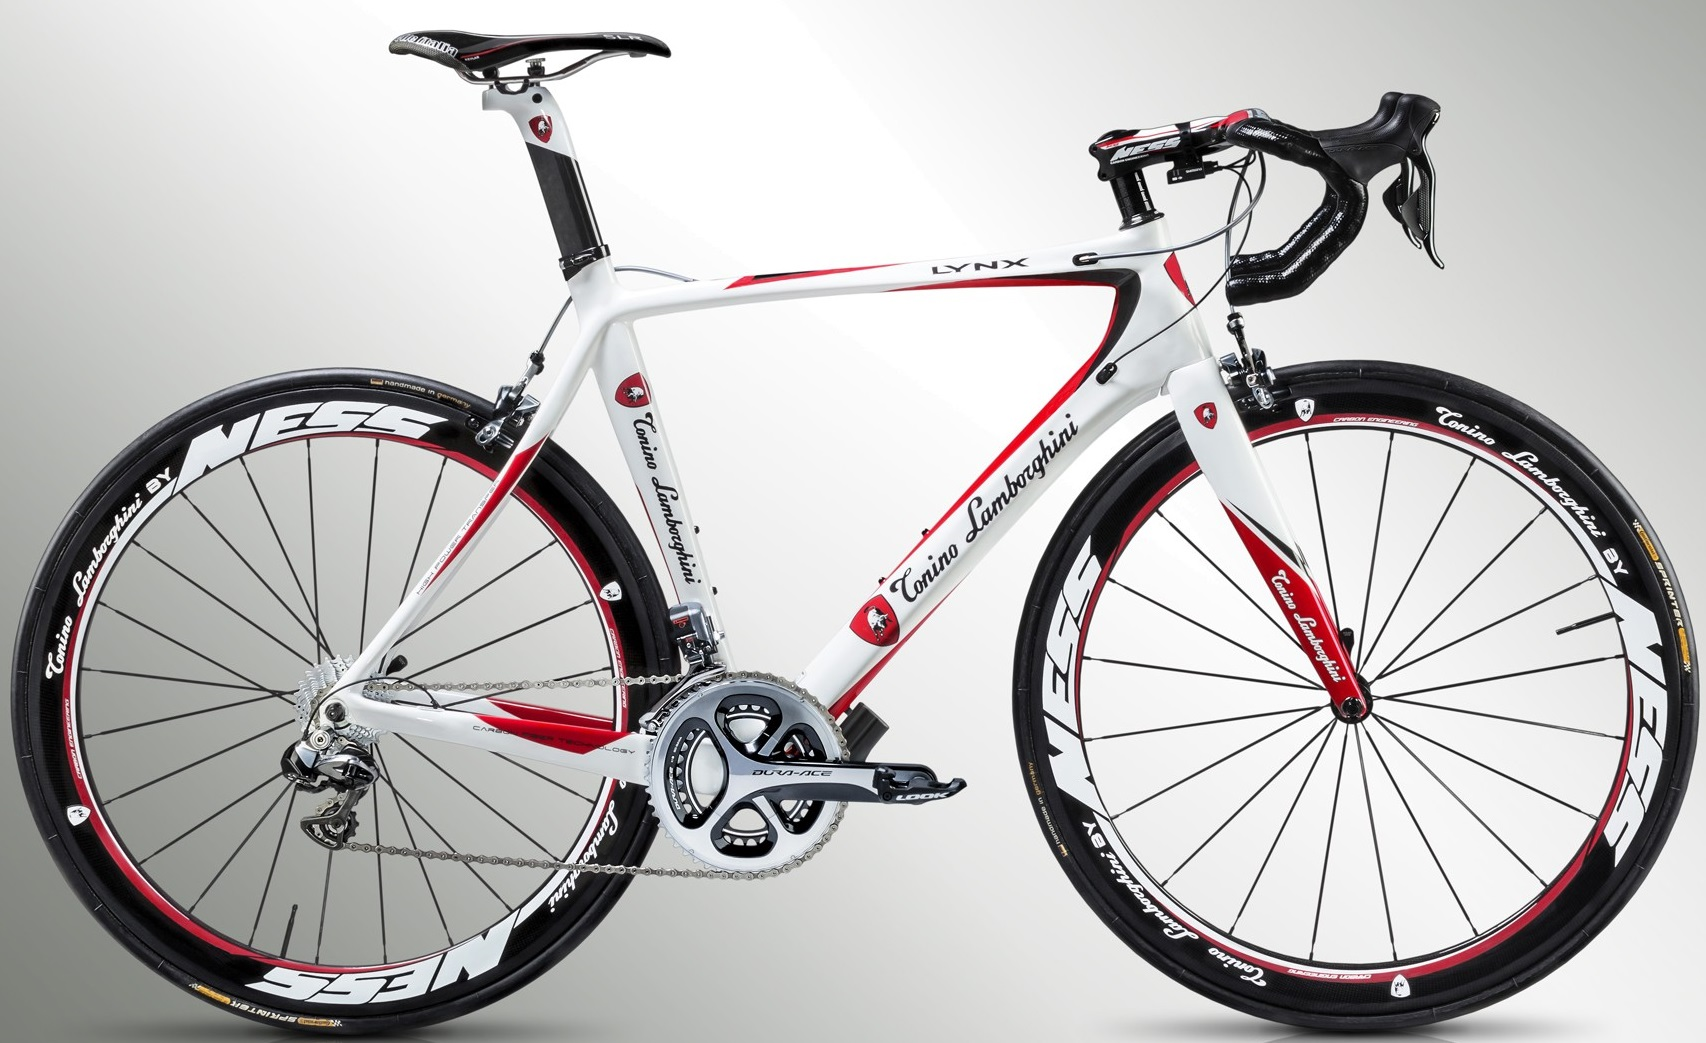 top frame scott addict heavier reviews roadbikereview version than s the viewed articles road only is lamborghini premium roadbikereviews bike most rim disc claims their of